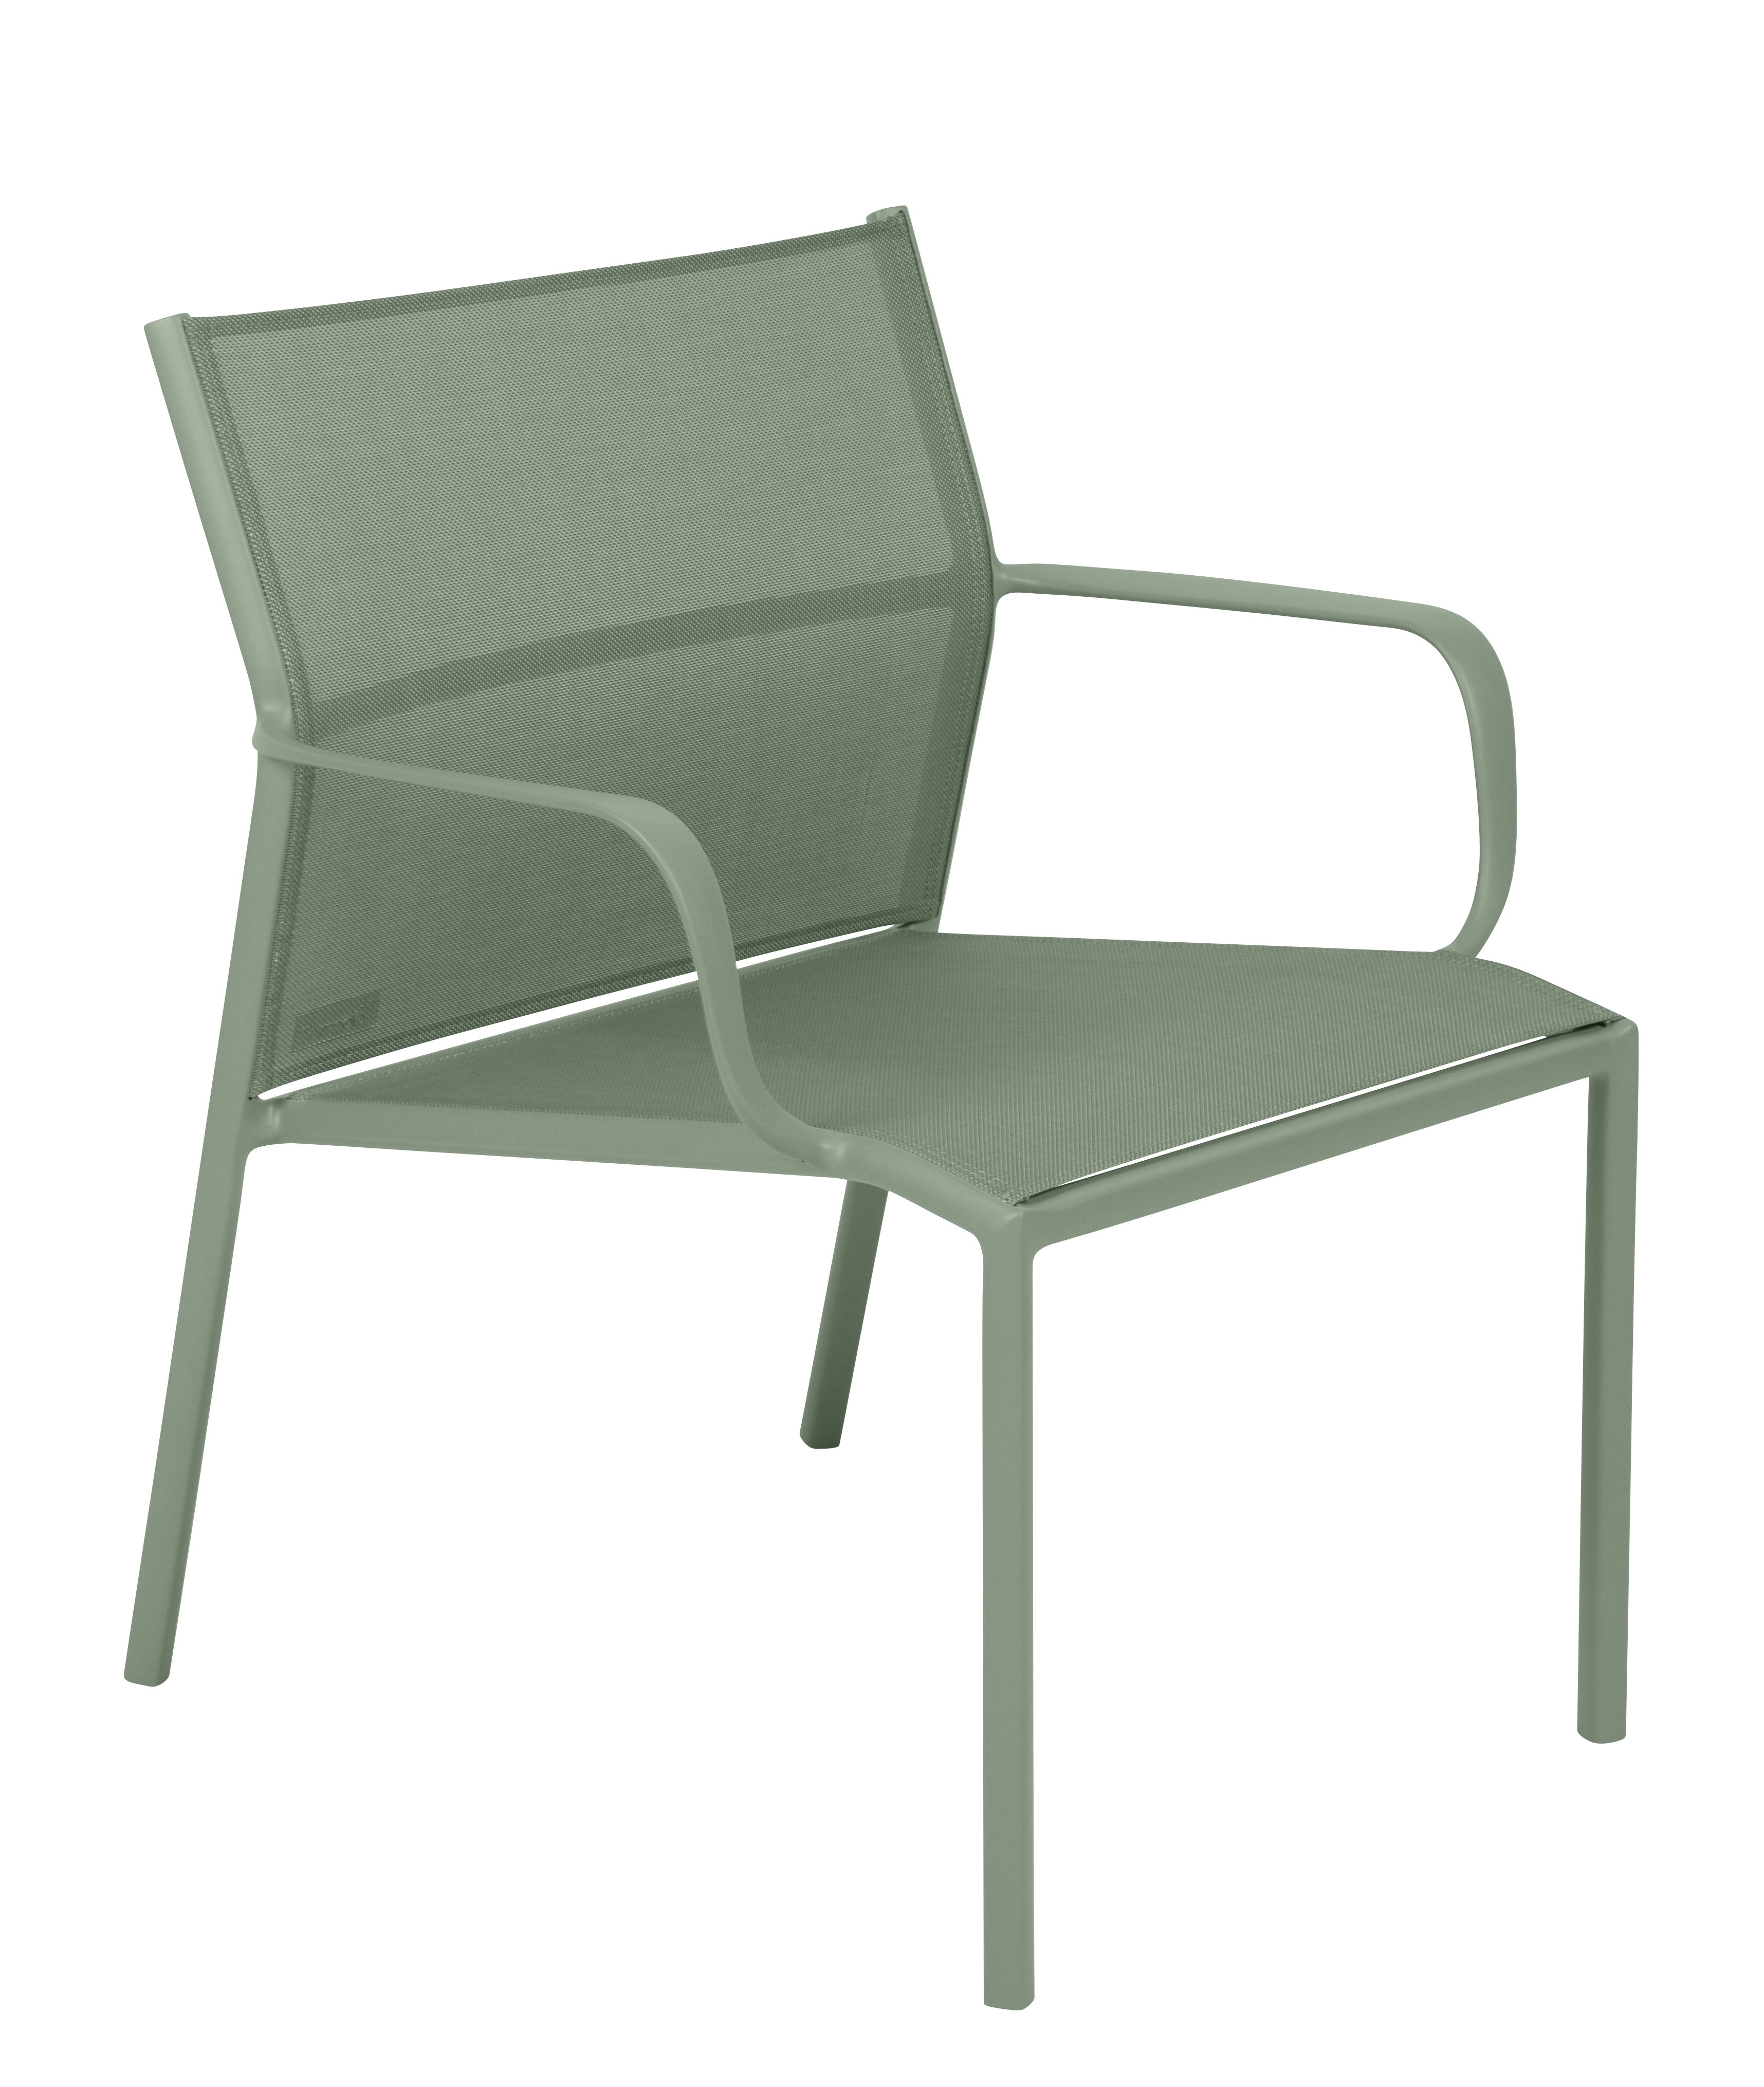 Furniture - Armchairs - Cadiz Low armchair - / Cloth by Fermob - Cactus - Batyline® fabric, Lacquered aluminium